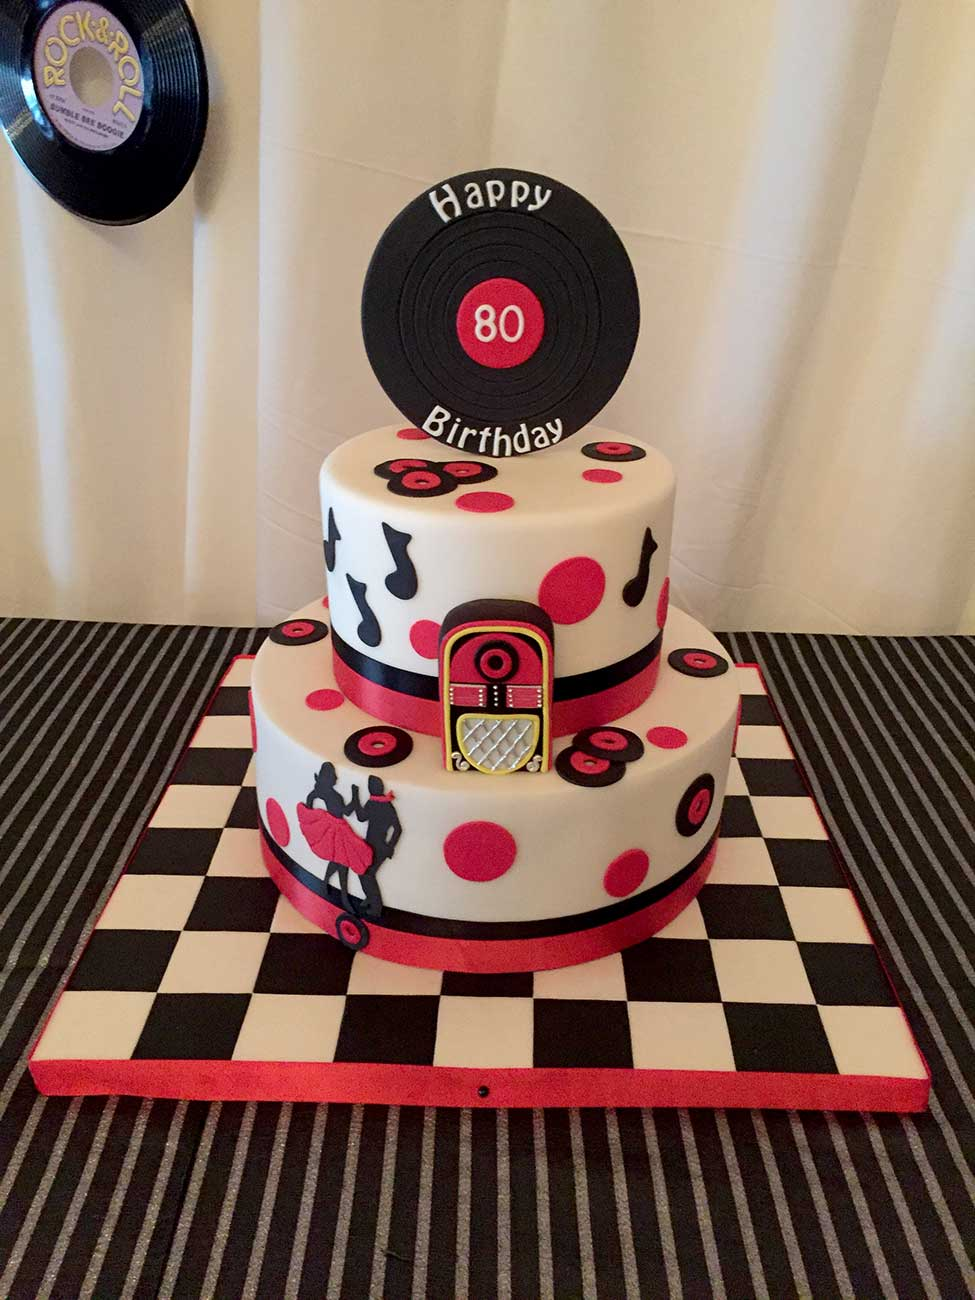 2 tiered wedding cake with a small record on top that says Happy 80 Birthday